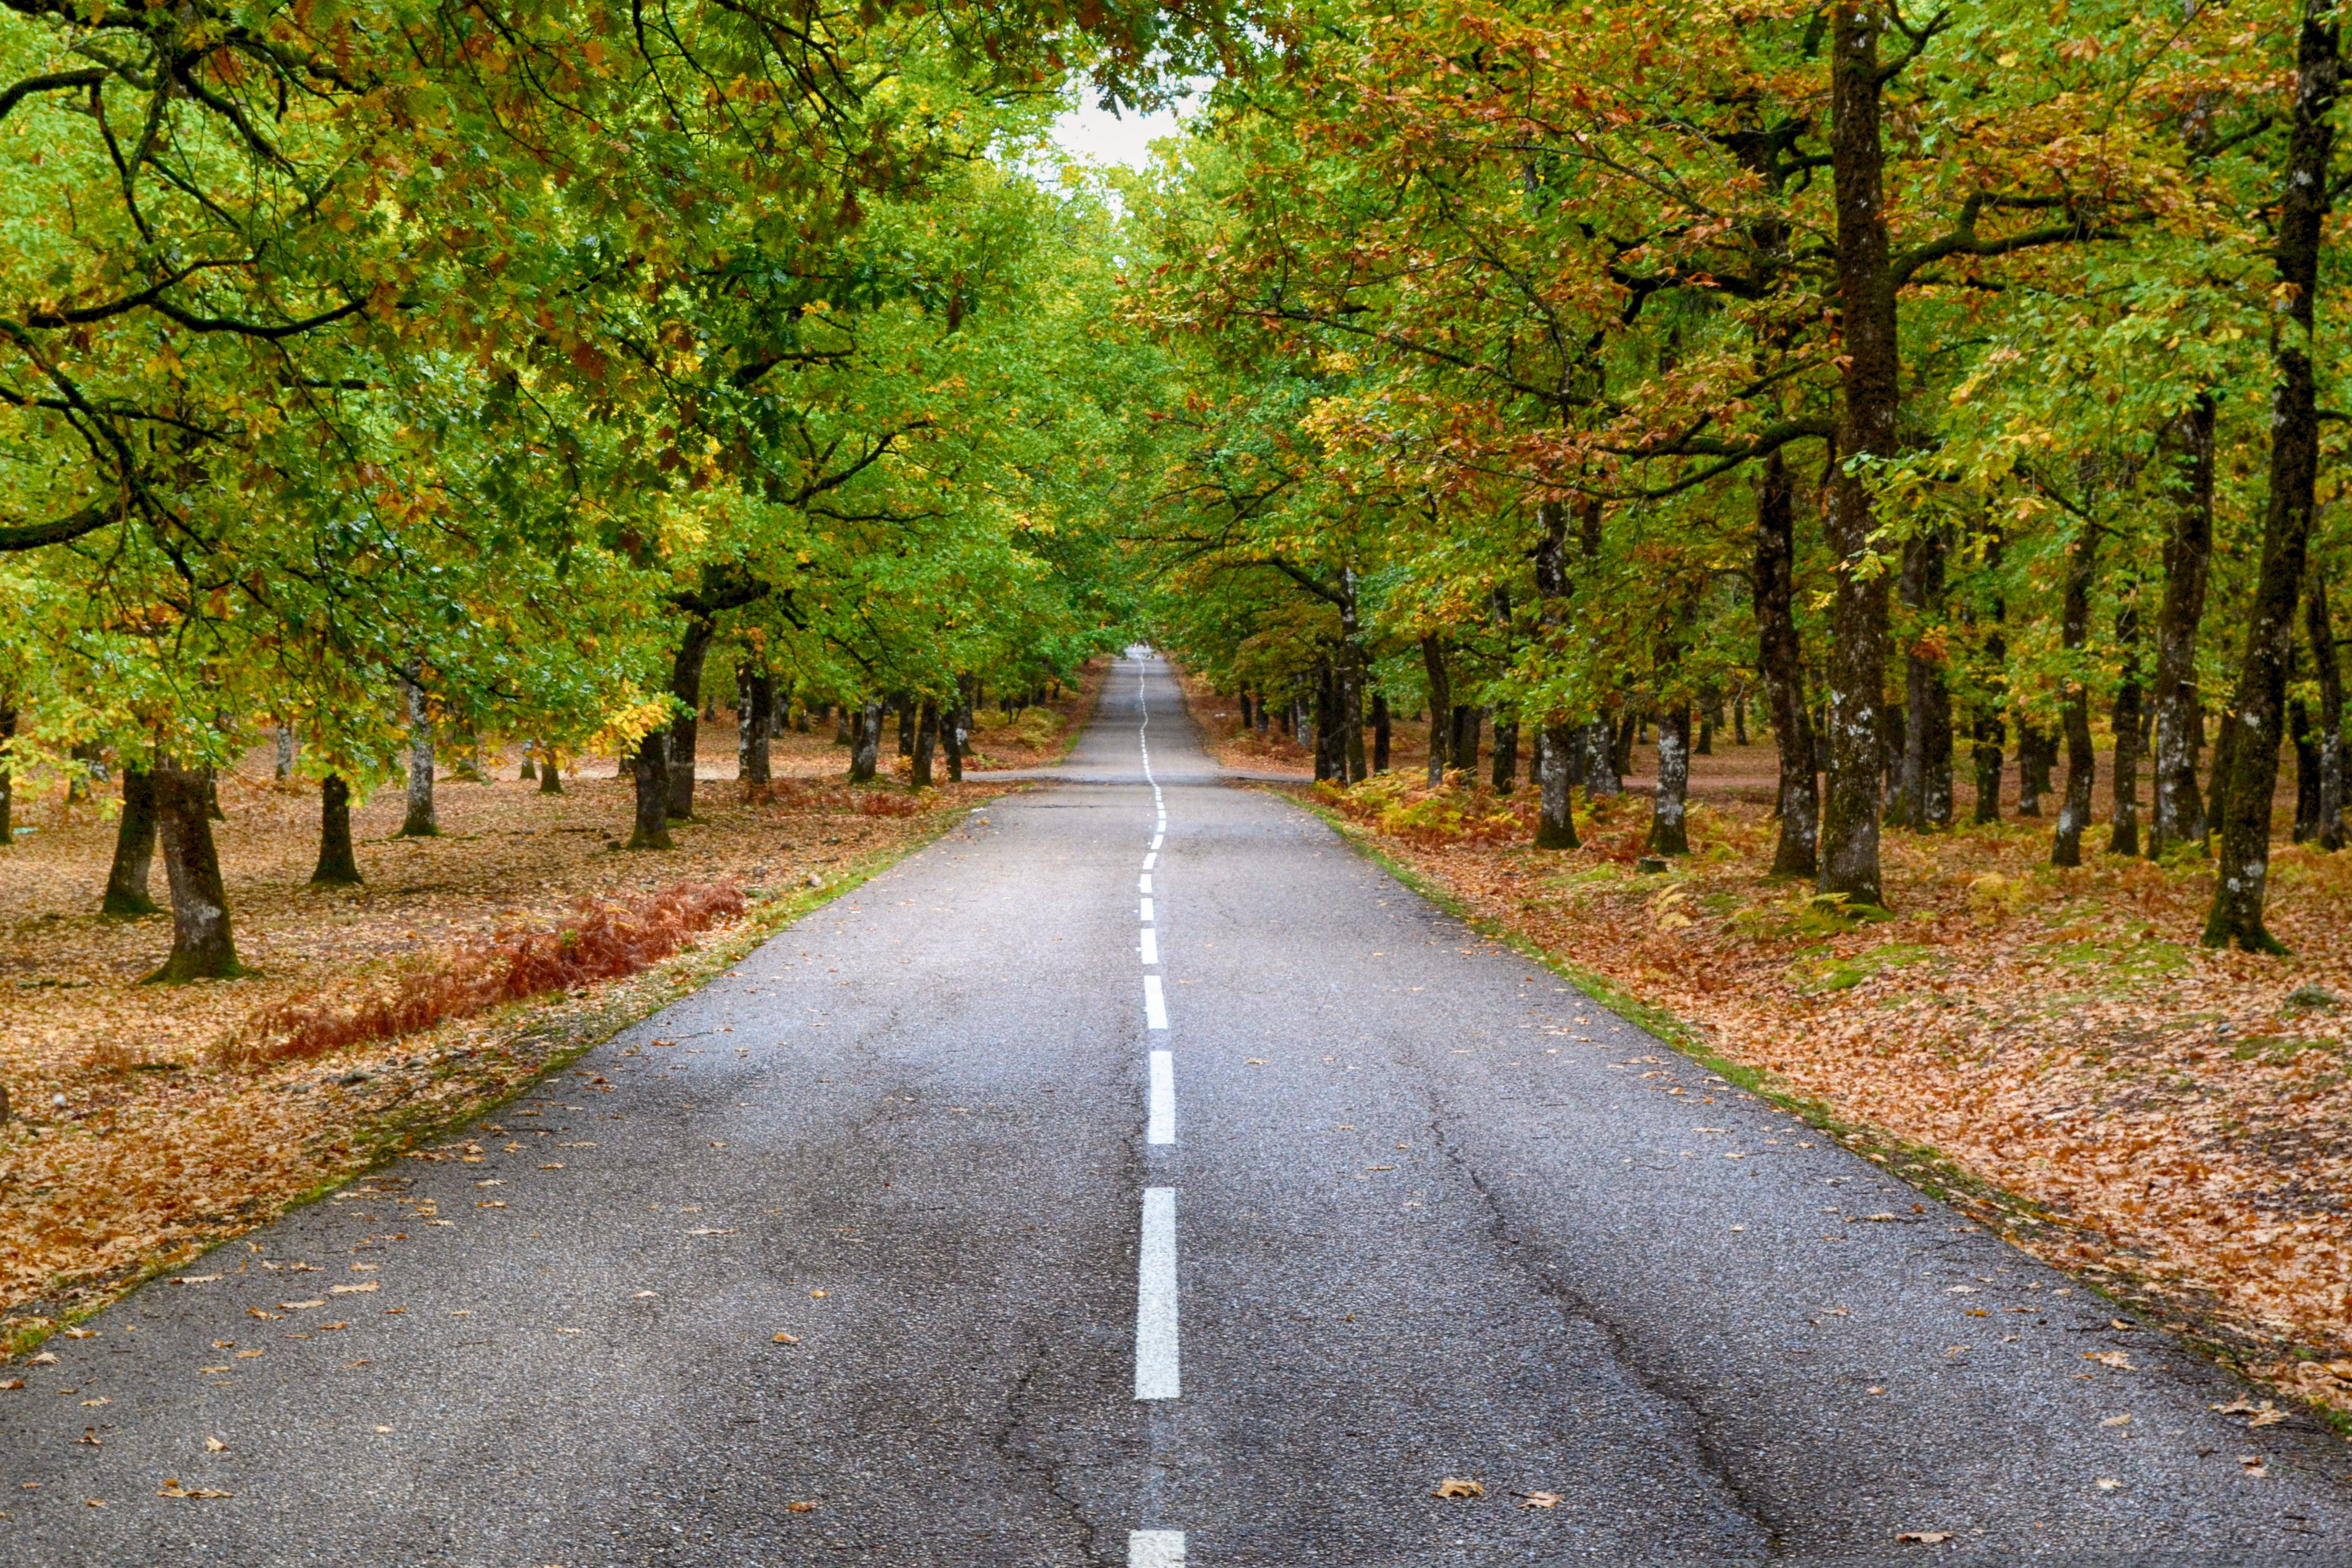 Grey concrete road in the middle of dried leaves photo